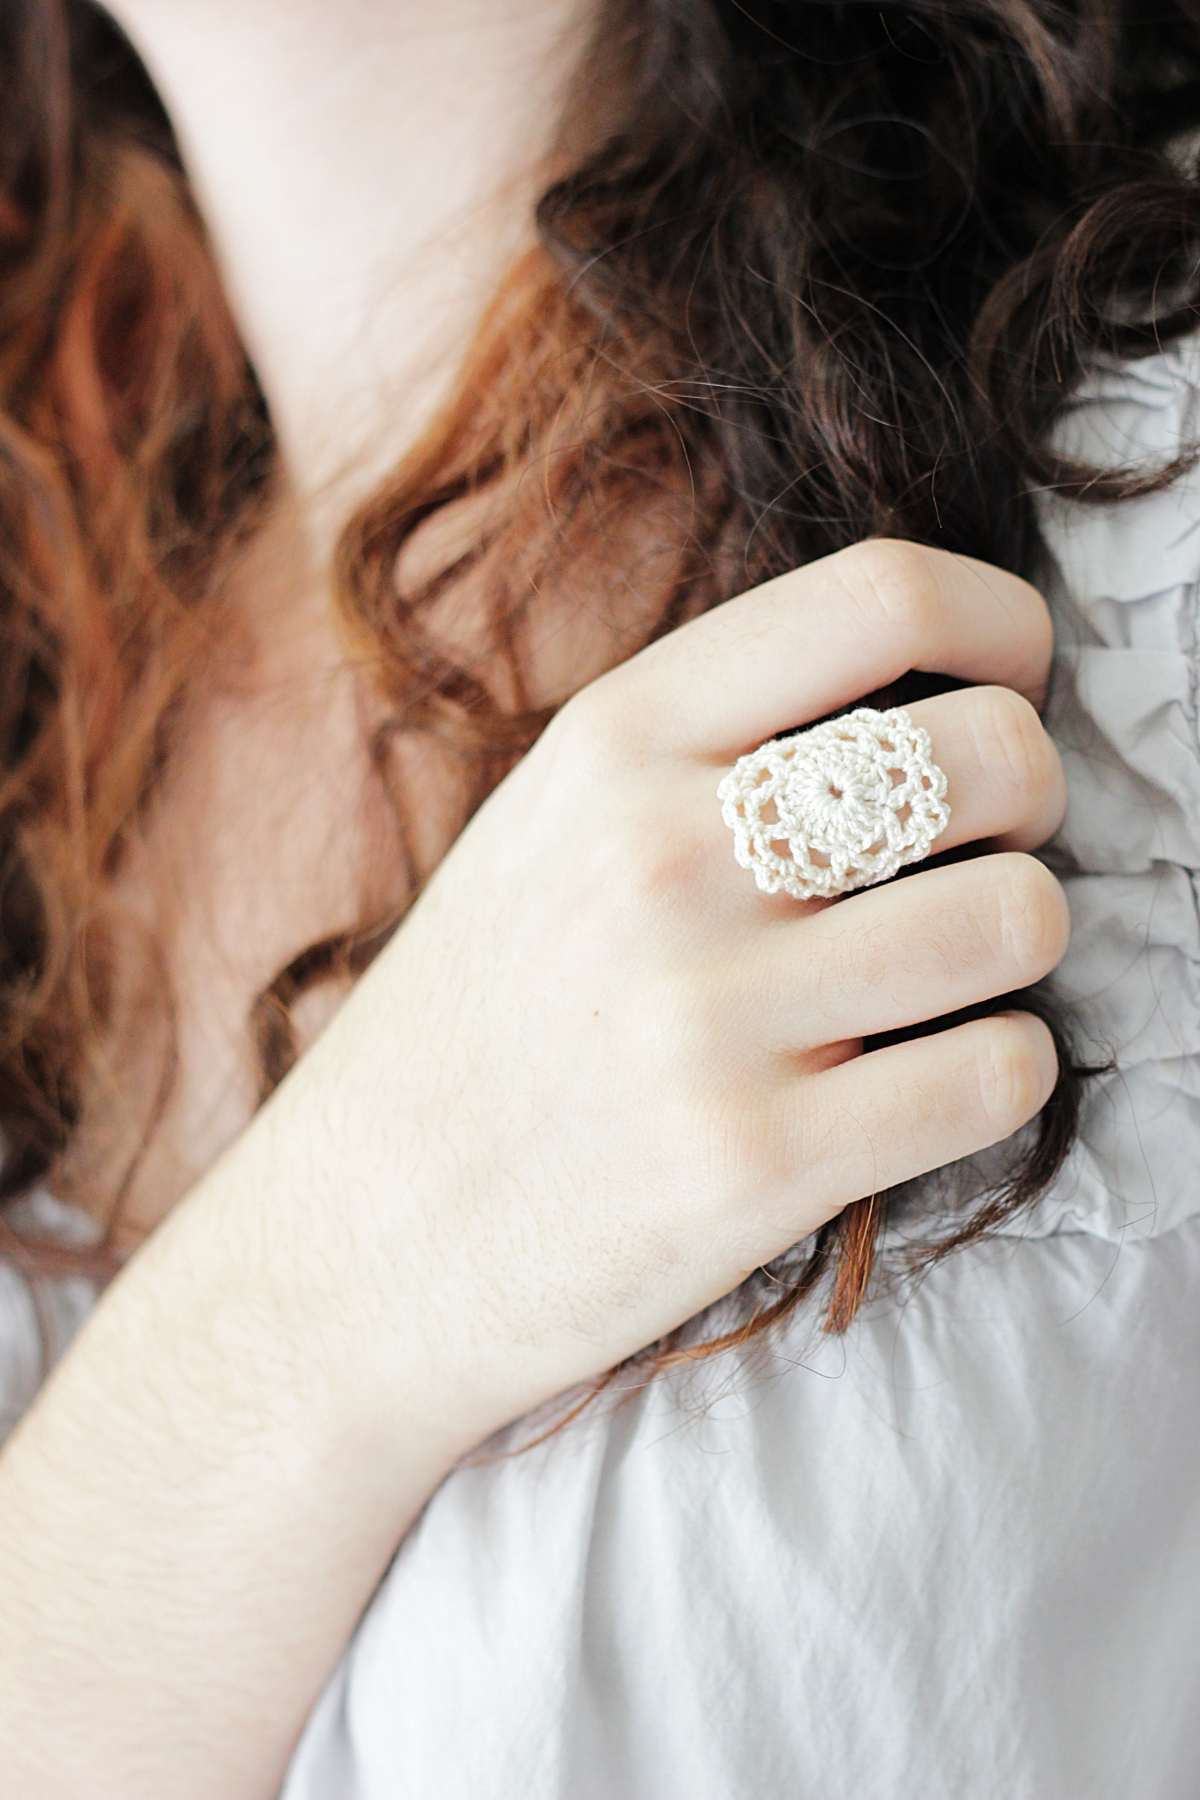 Product Spotlight: Lace Rings